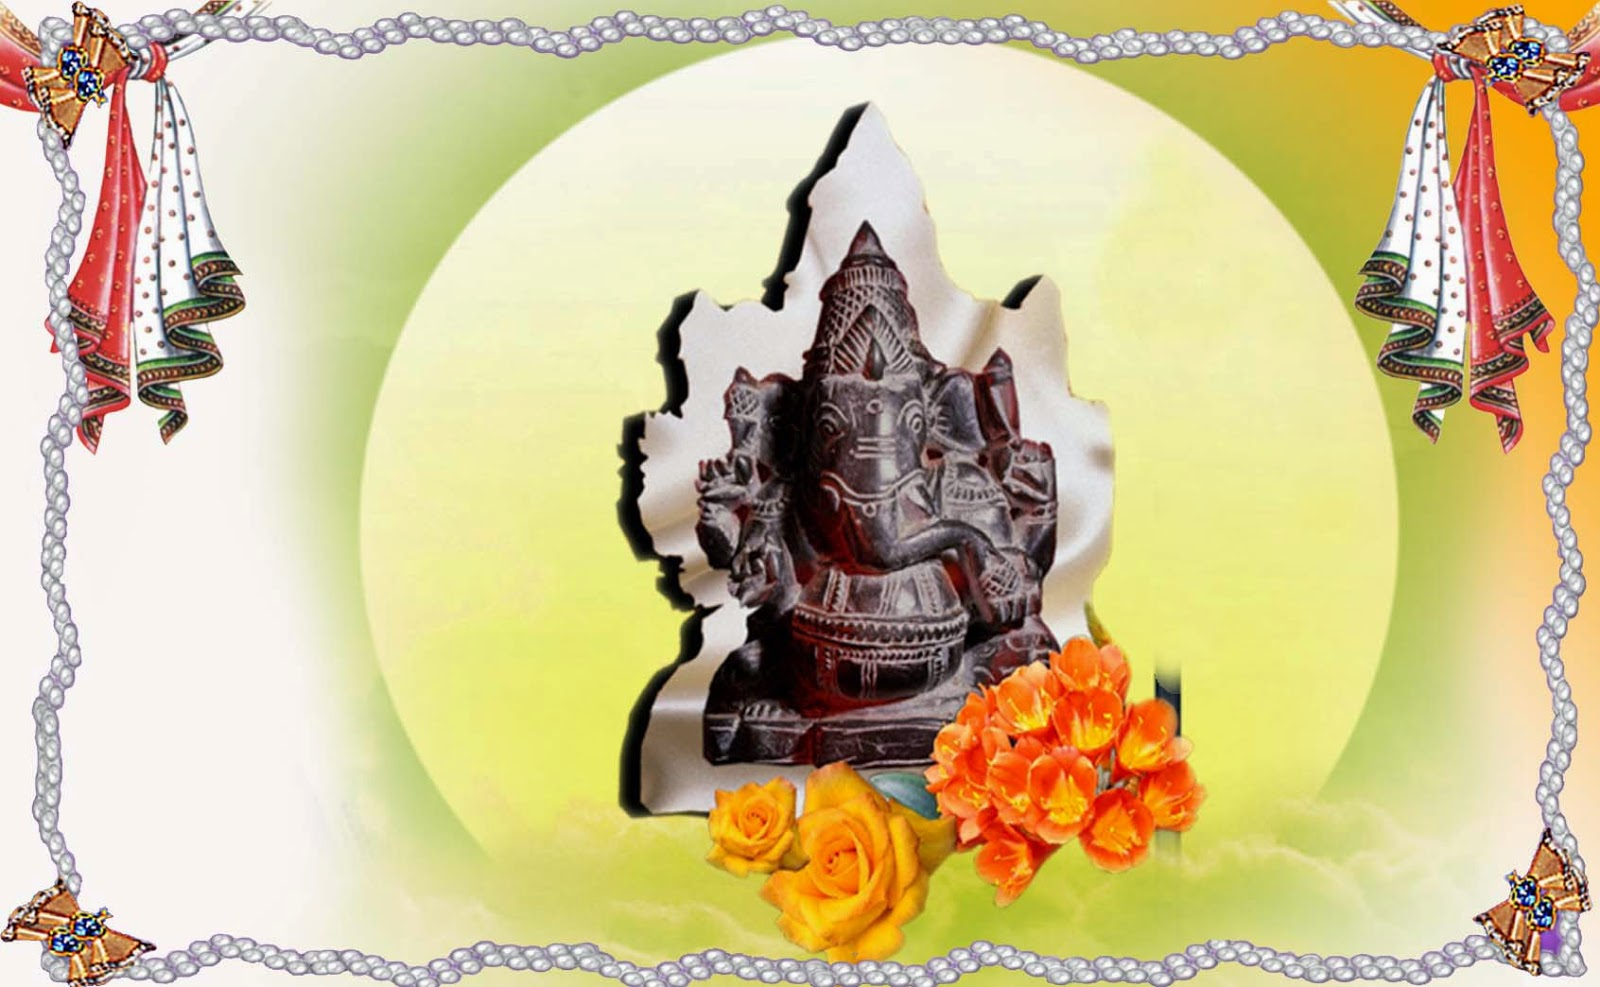 subh-ridhdhi-sidhdhi-shree-lord-ganesha-full-hd